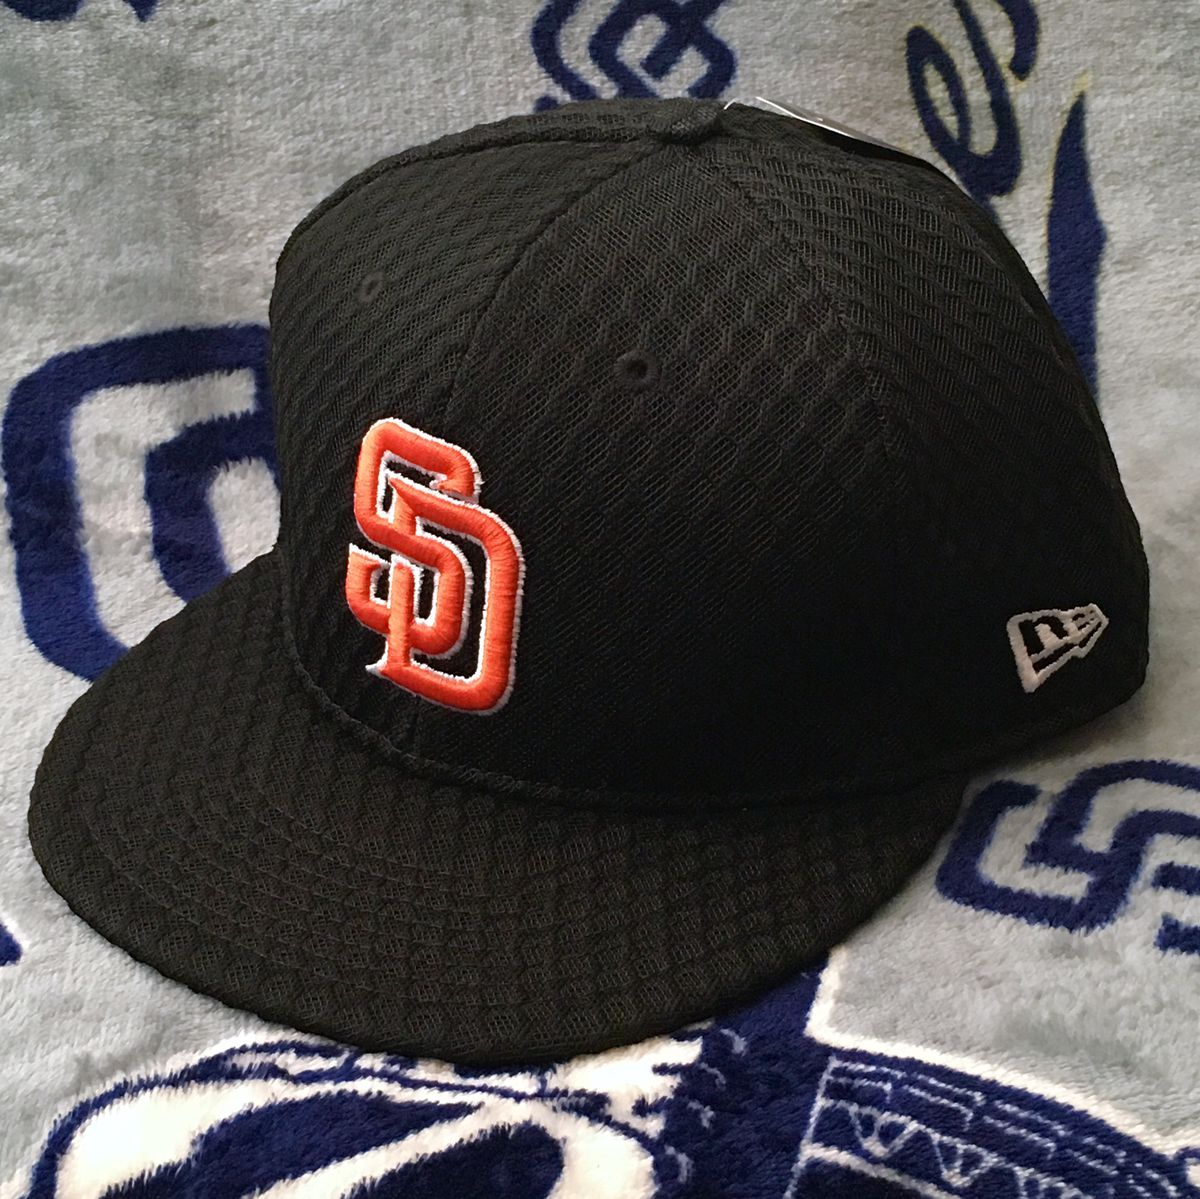 f993fd9816bb1f ... Derby itself) wore the All-Star Game caps, and players at FanFest wore  their All-Star Game jerseys and caps. These caps will probably make an  appearance ...